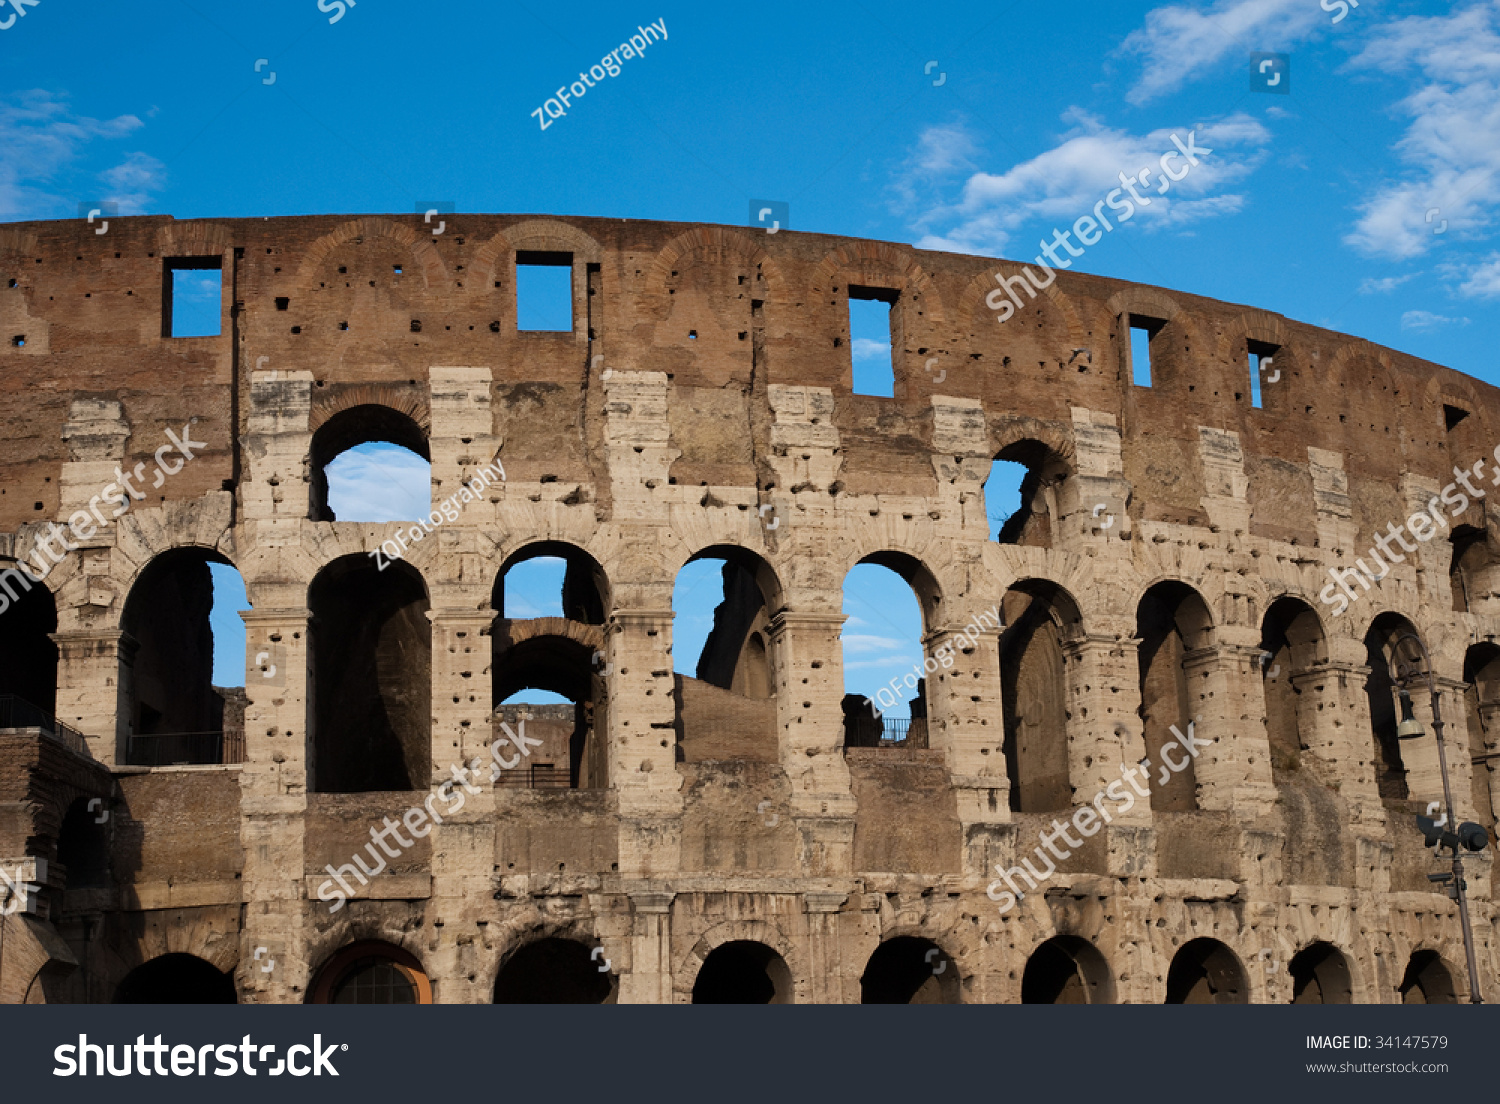 dating site rome italy Rome sightseeing tickets & passes: check out viator's reviews and photos of rome tours.